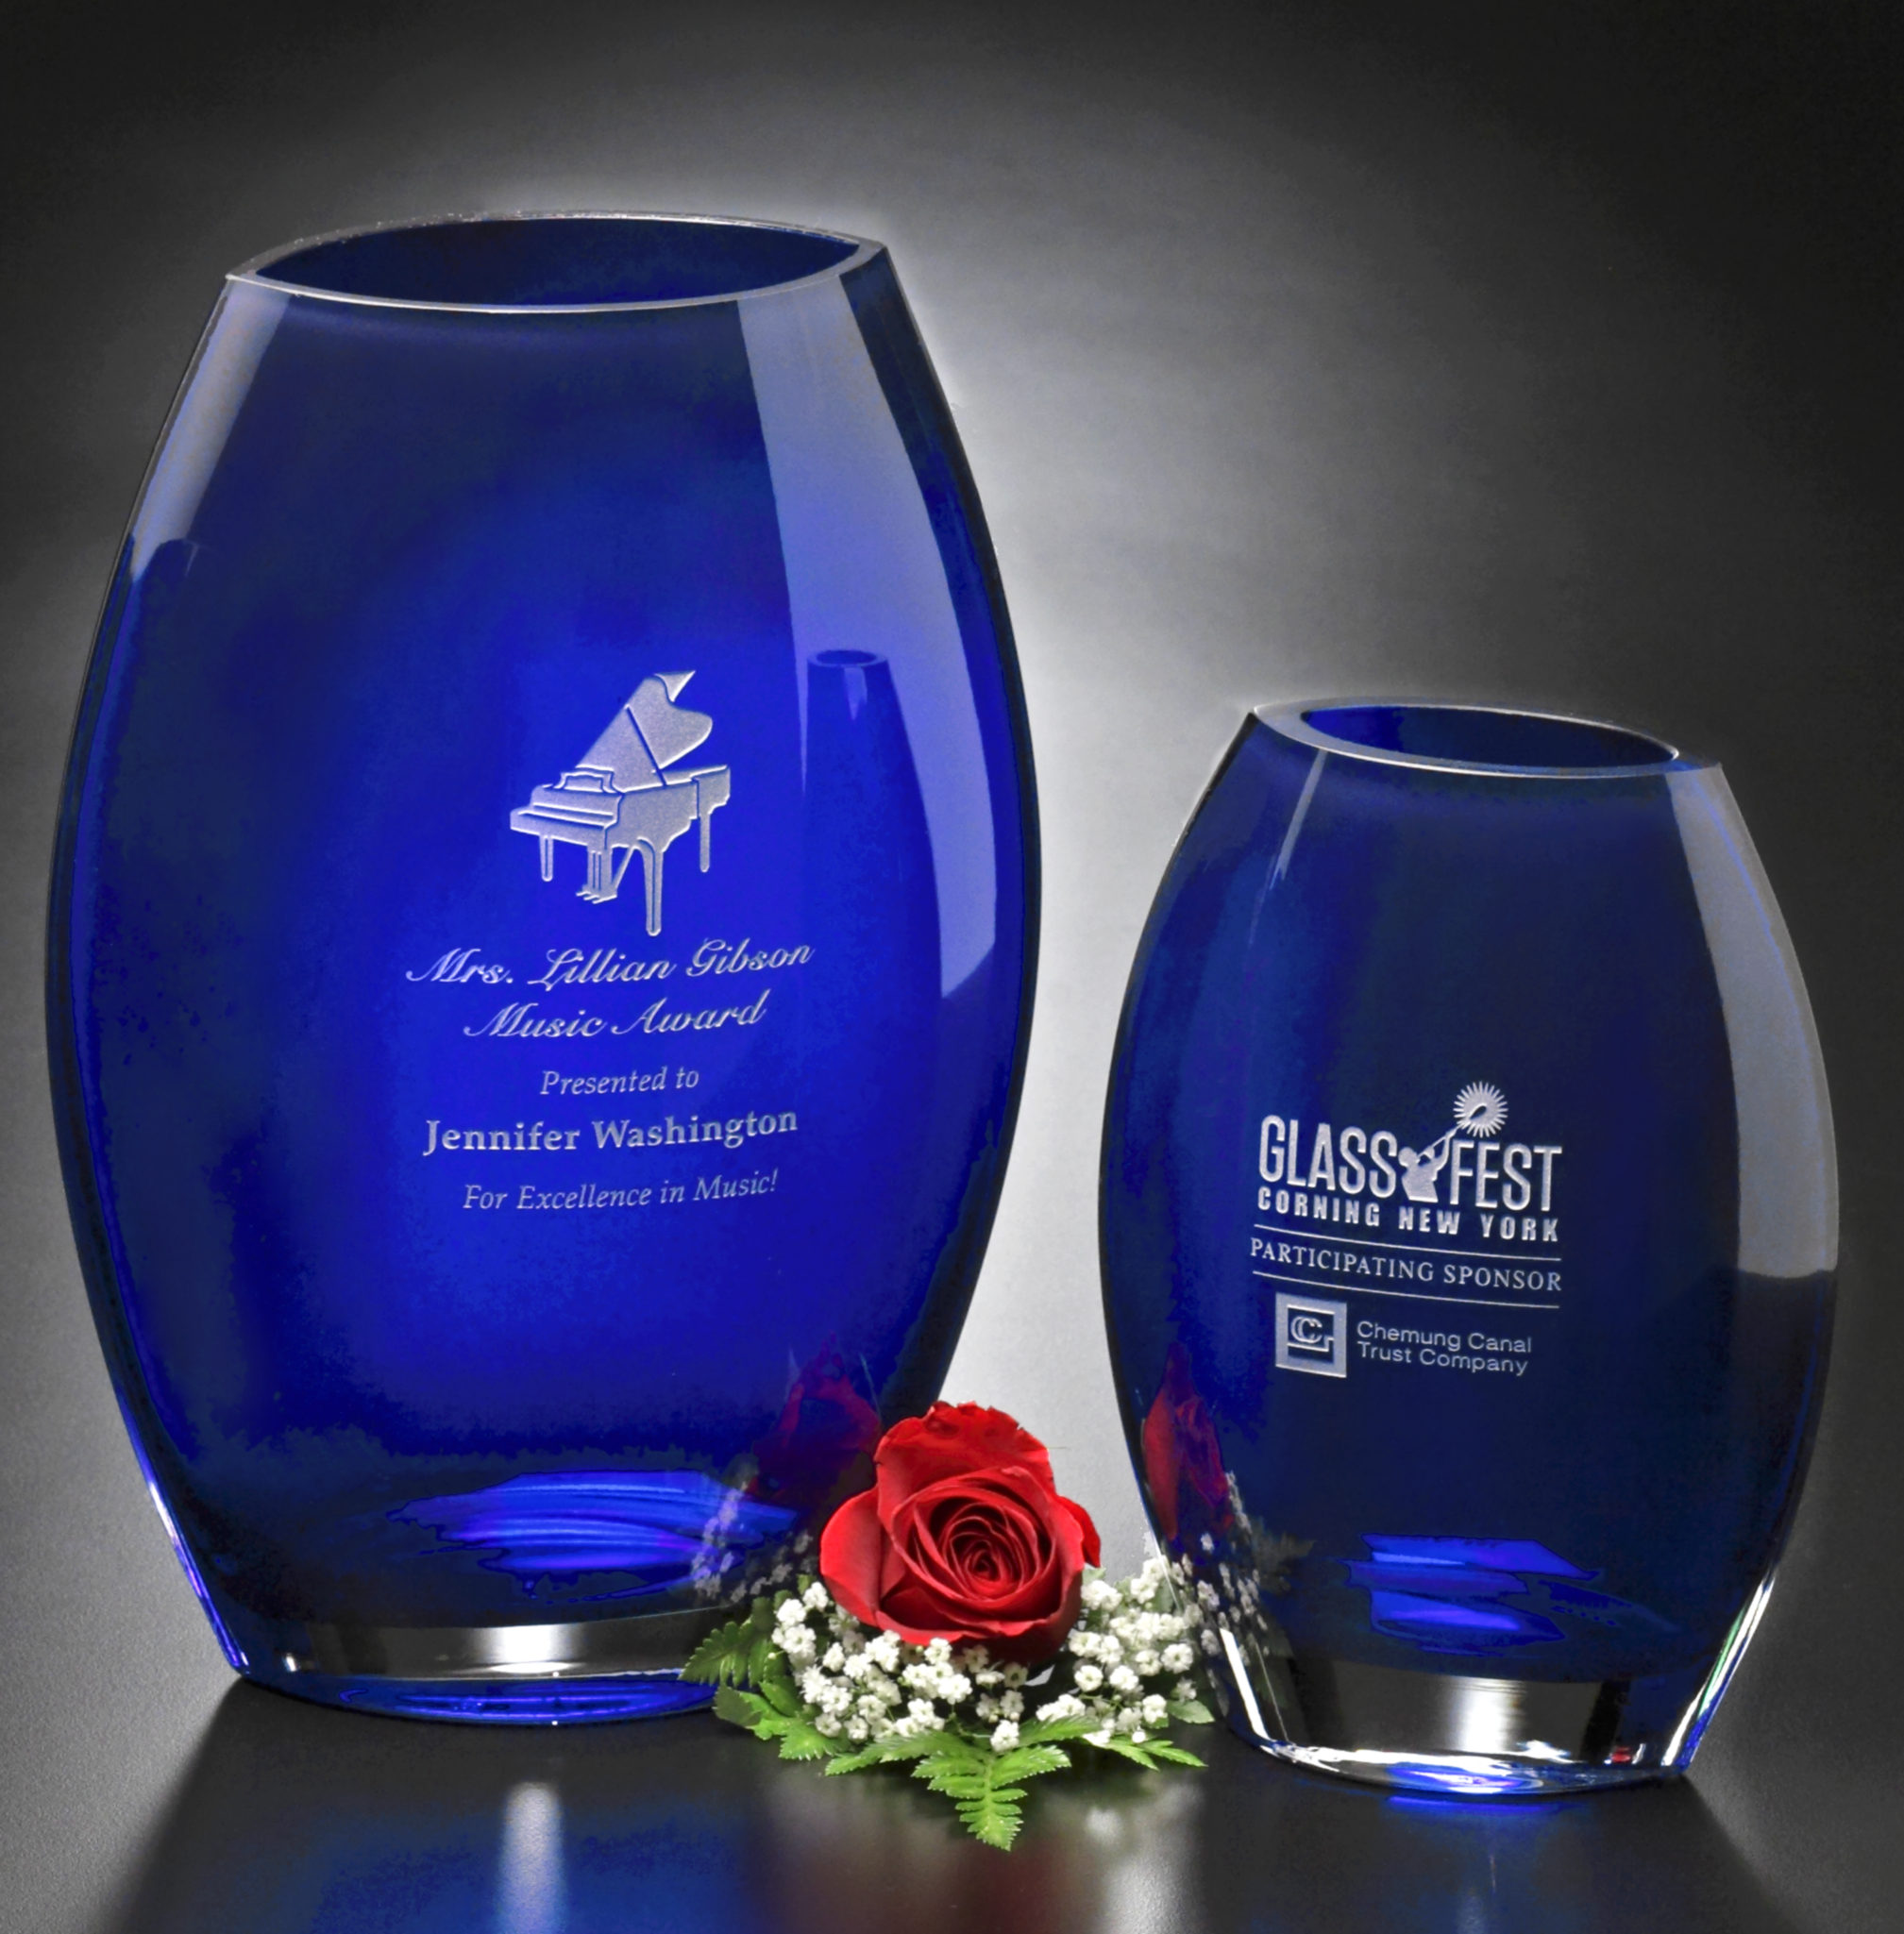 Eye-Catching Cobalt Blue Vases in 3 Sizes